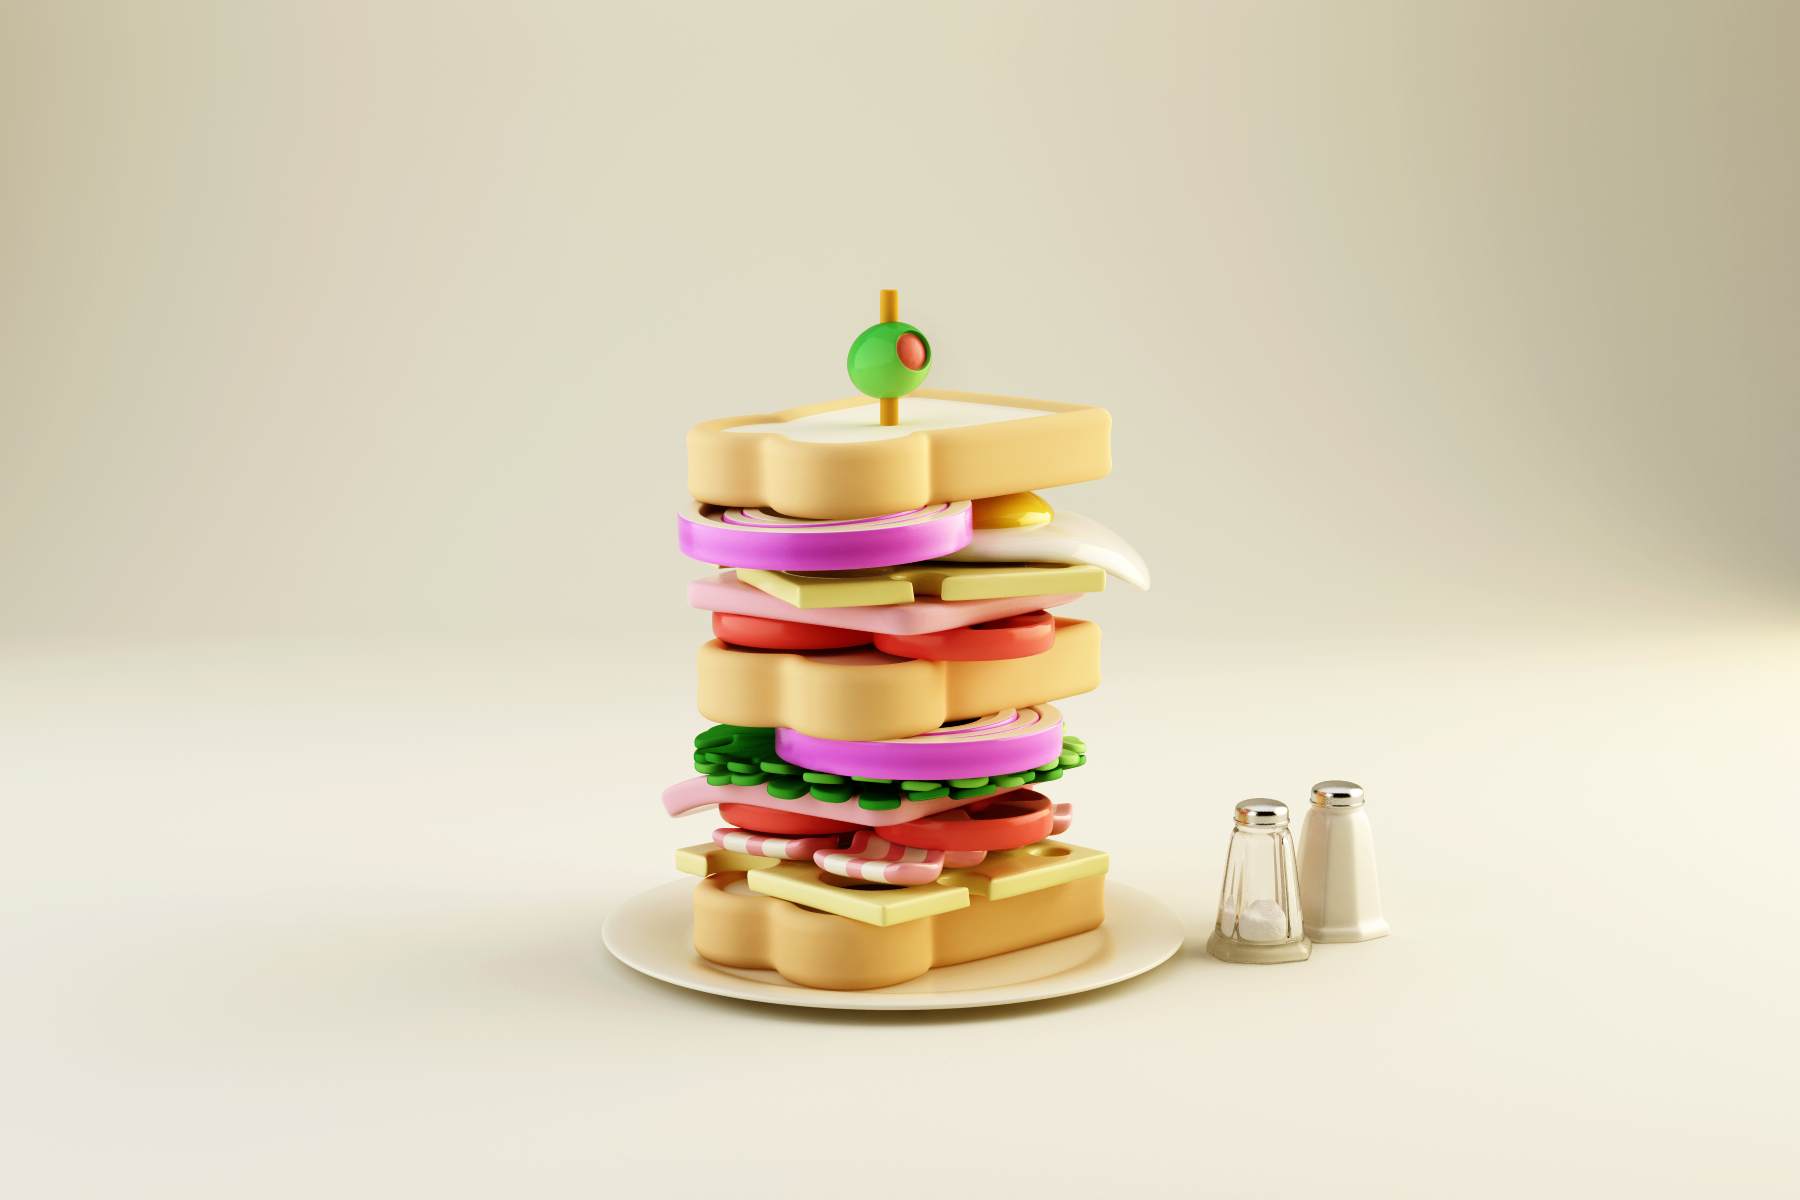 Sandwich_Ver01_StyleFrame01.png